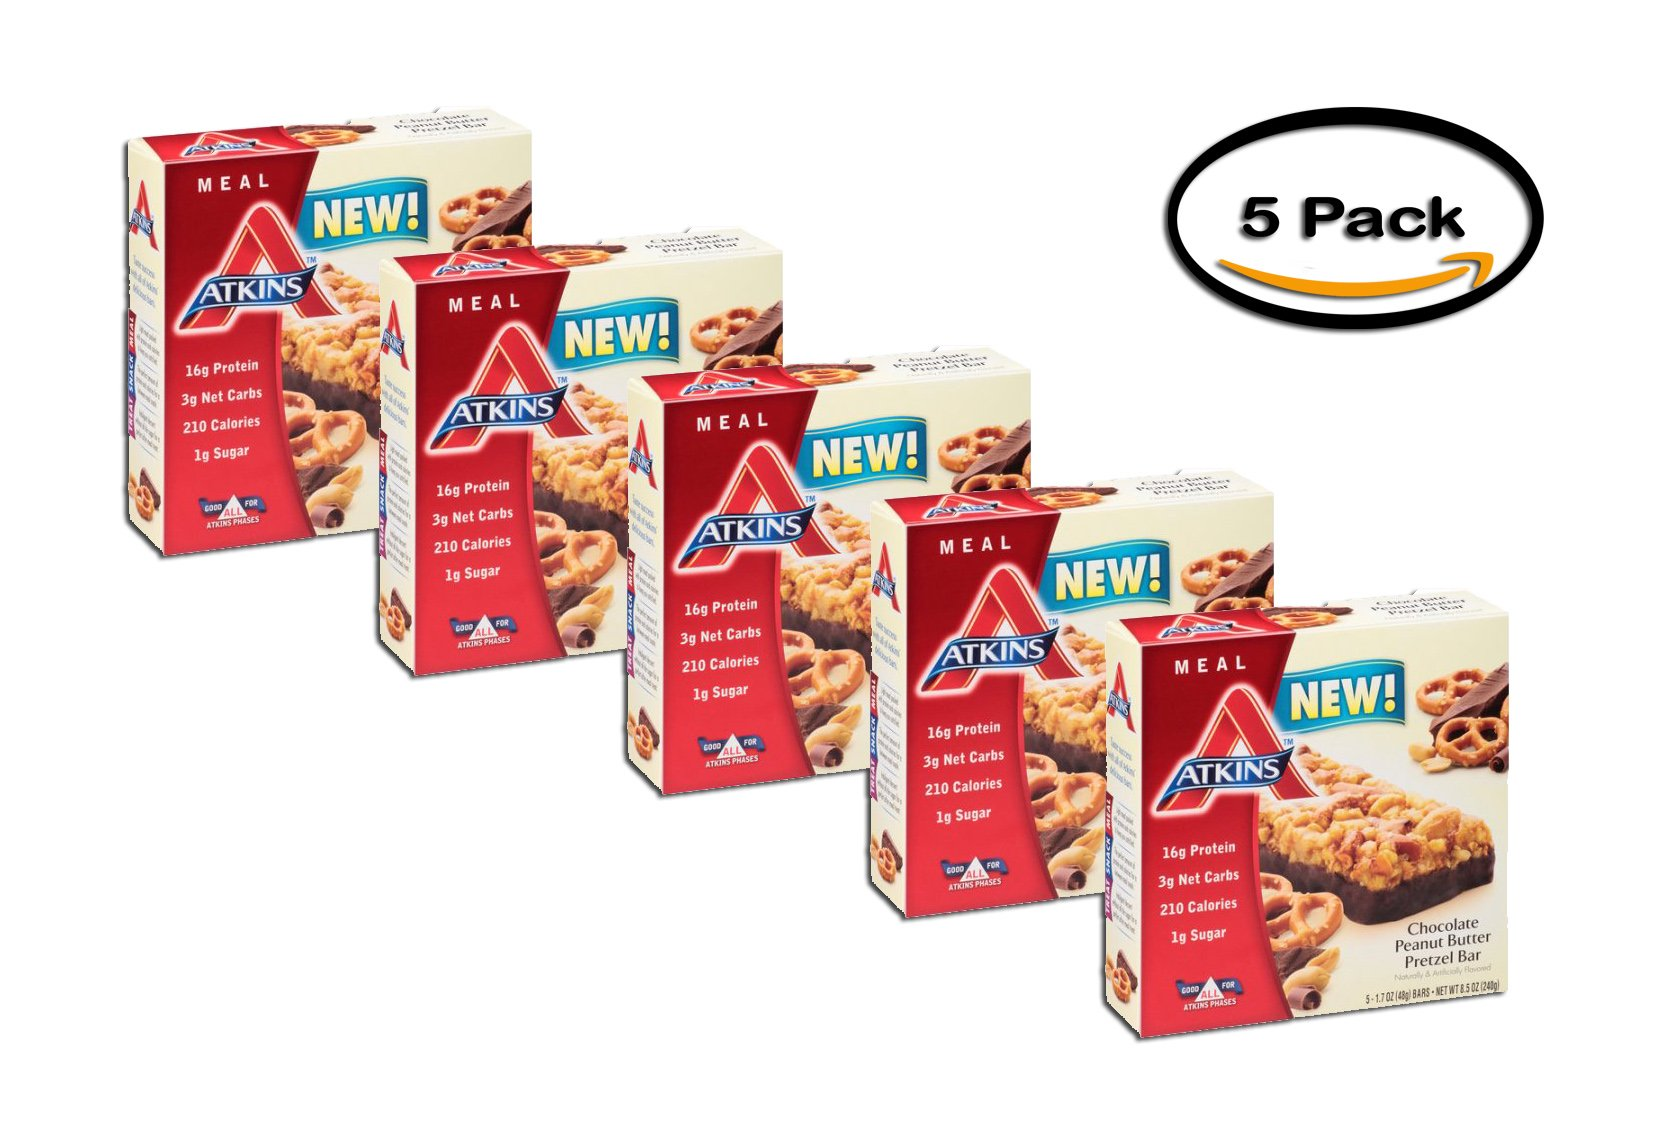 PACK OF 5 - Atkins Chocolate Peanut Butter Pretzel Bar, 1.7oz, 5-pack (Meal Replacement)